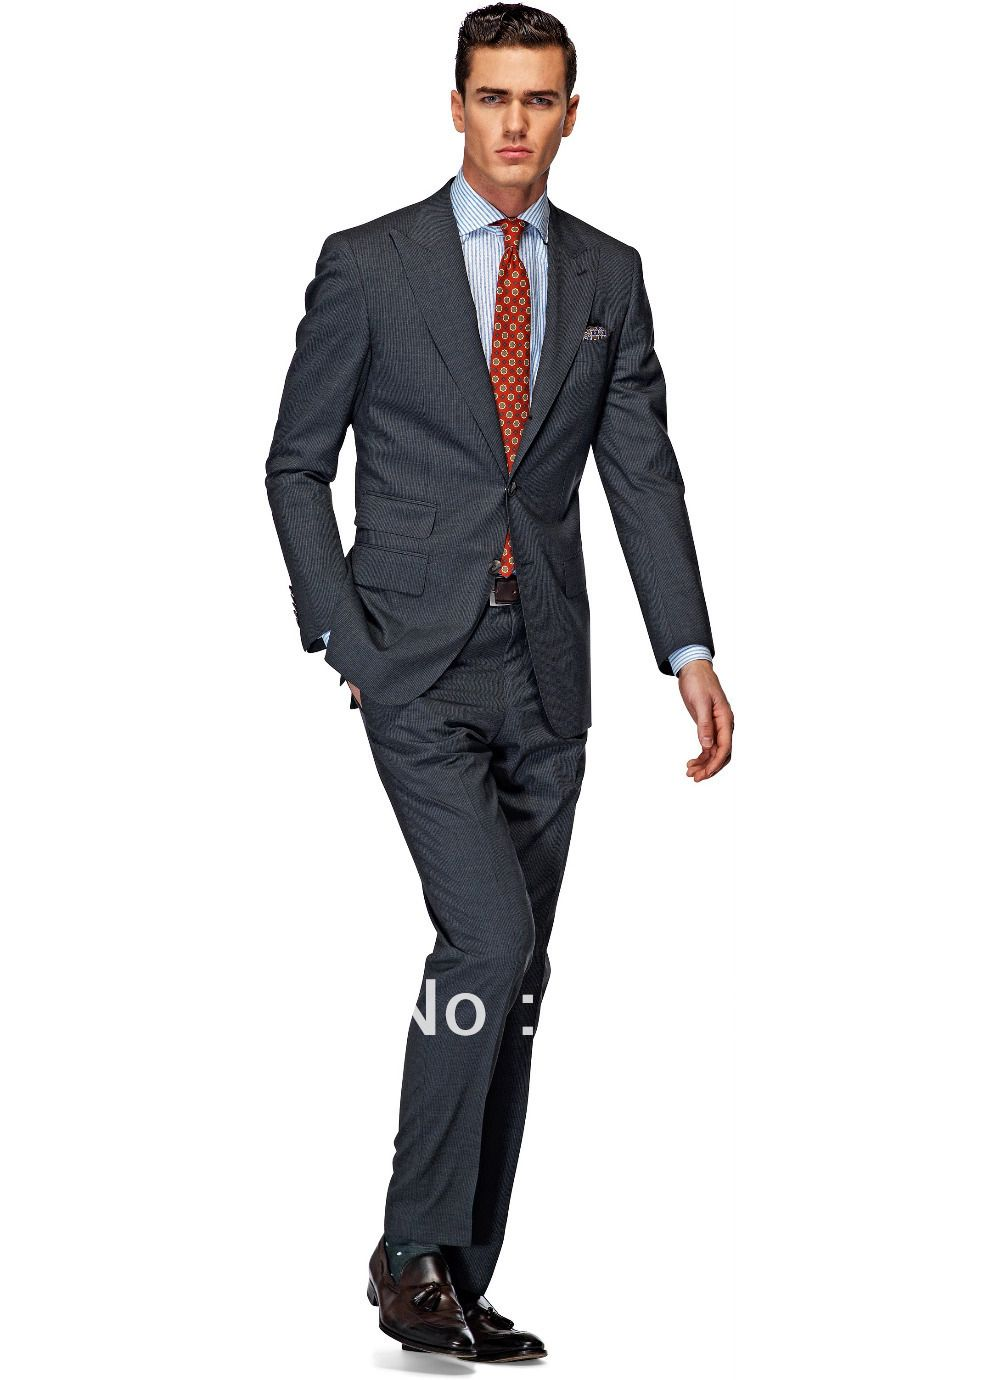 head to toe interview attire to impress men s wearhouse dress high quality customized business mens suits design male suits two pieces coat pants